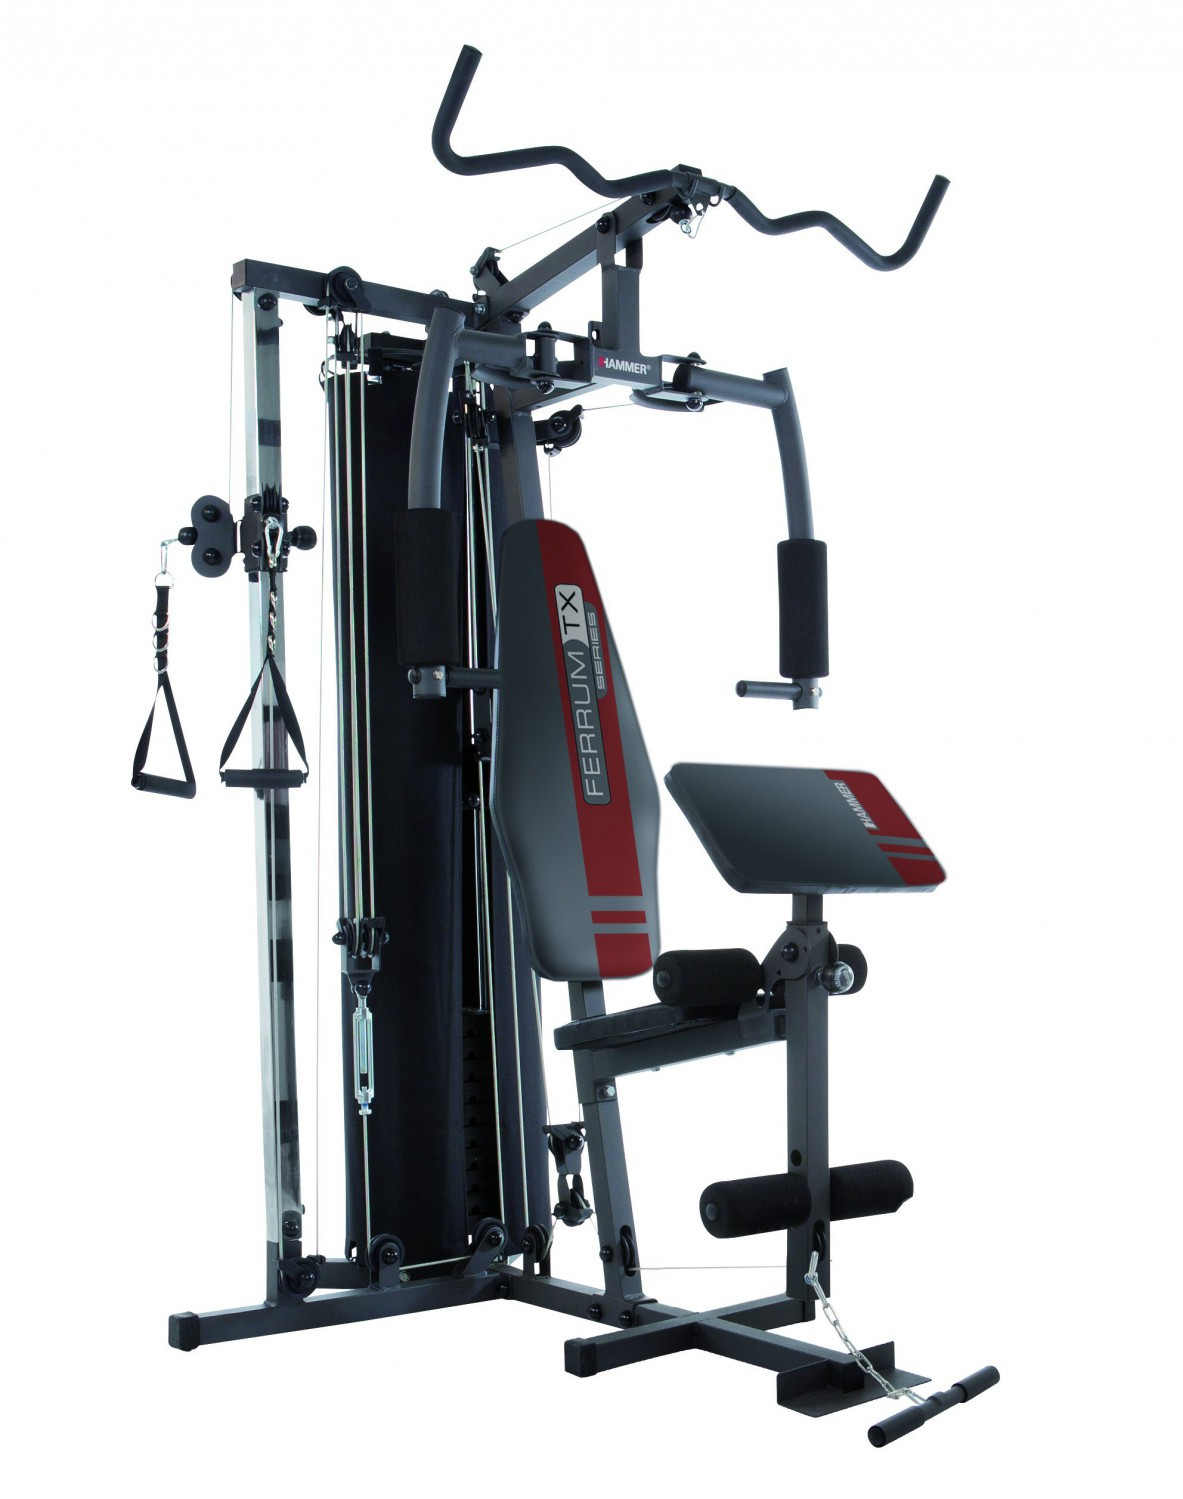 hammer kraftstation ferrum tx 2 fitnessstation fitnessturm kraftstation multigym ebay. Black Bedroom Furniture Sets. Home Design Ideas